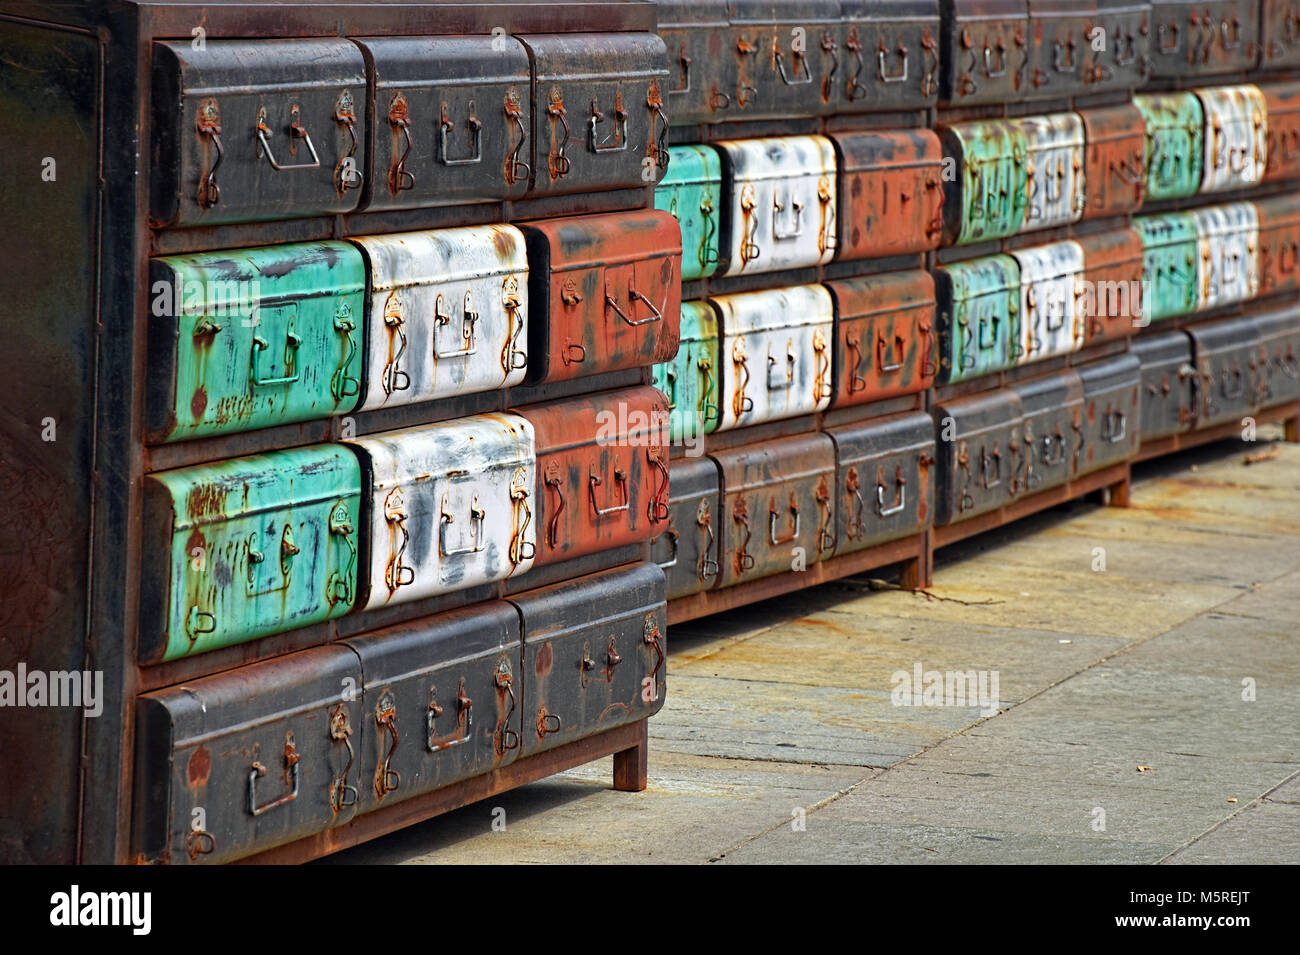 Suitcases - Packed and Ready for the Journey - Stock Image